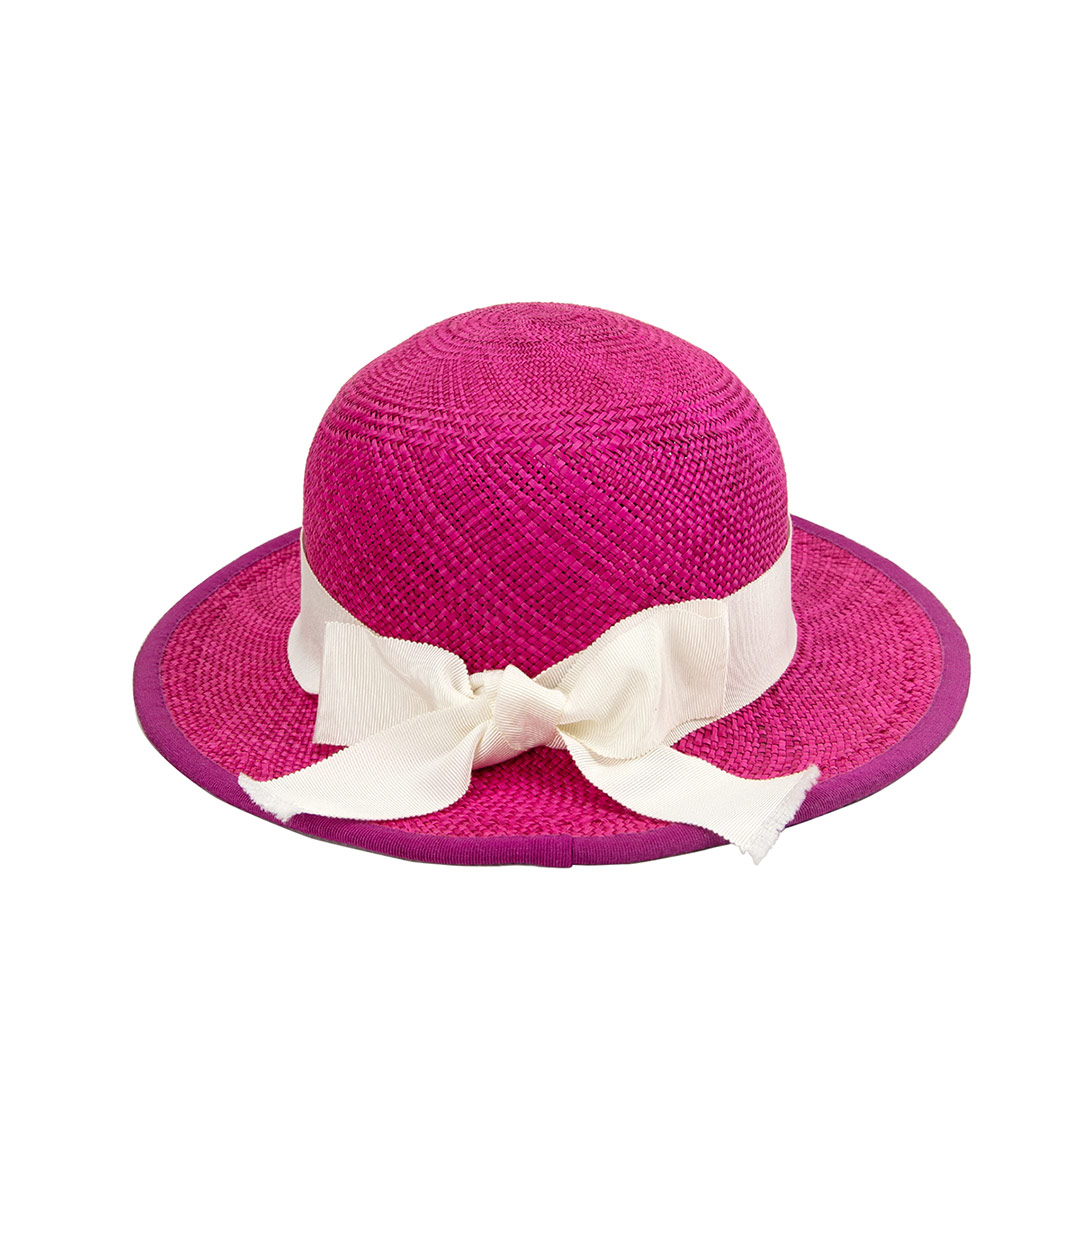 back view of hot pink straw hat with white bow